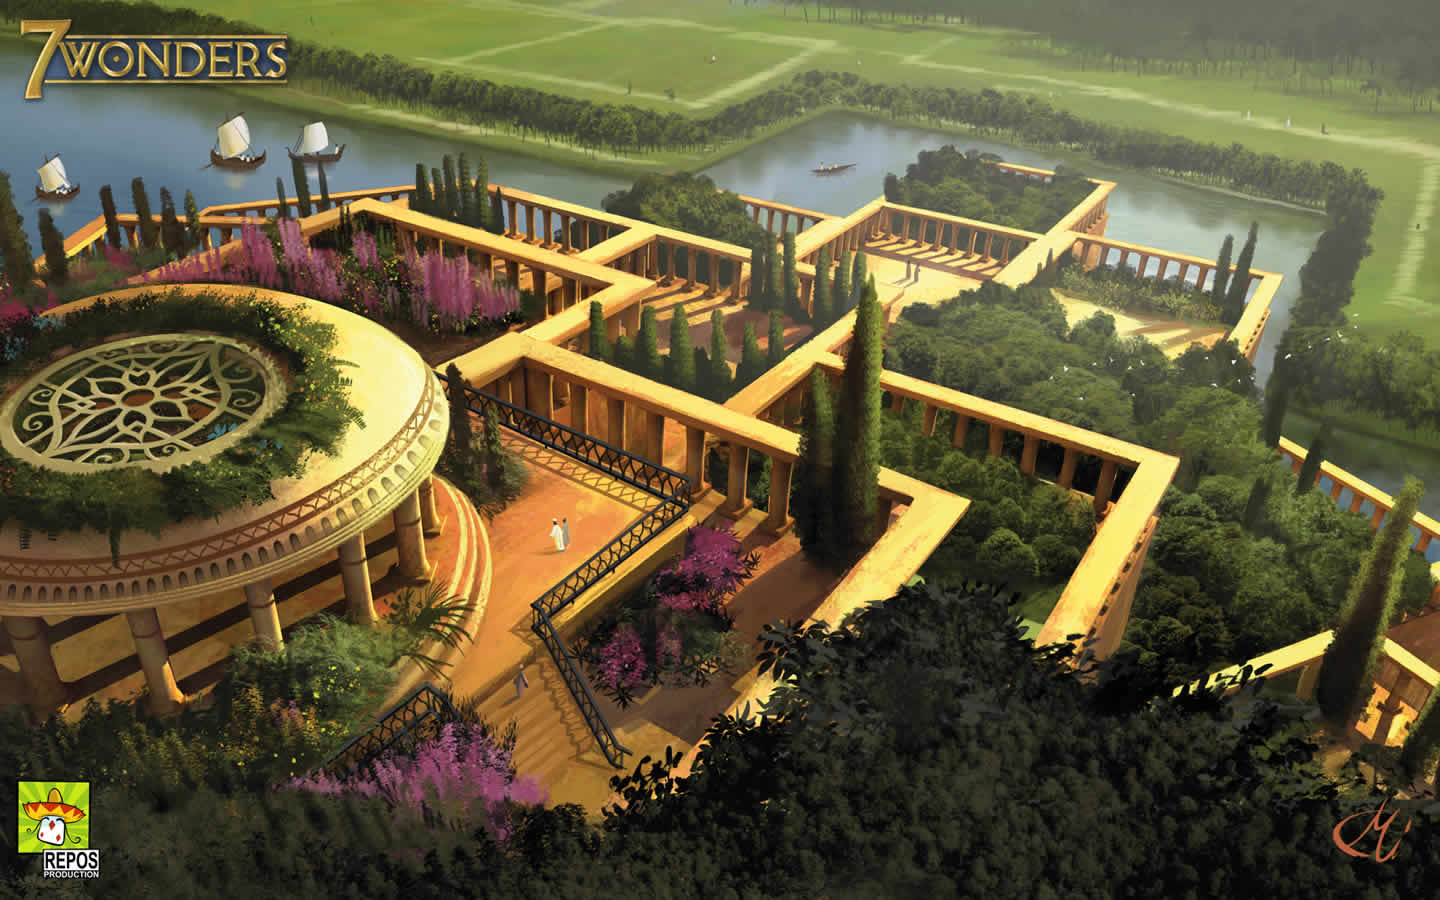 Hanging gardens of babylon wallpapers wallpaper cave for Garden information sites